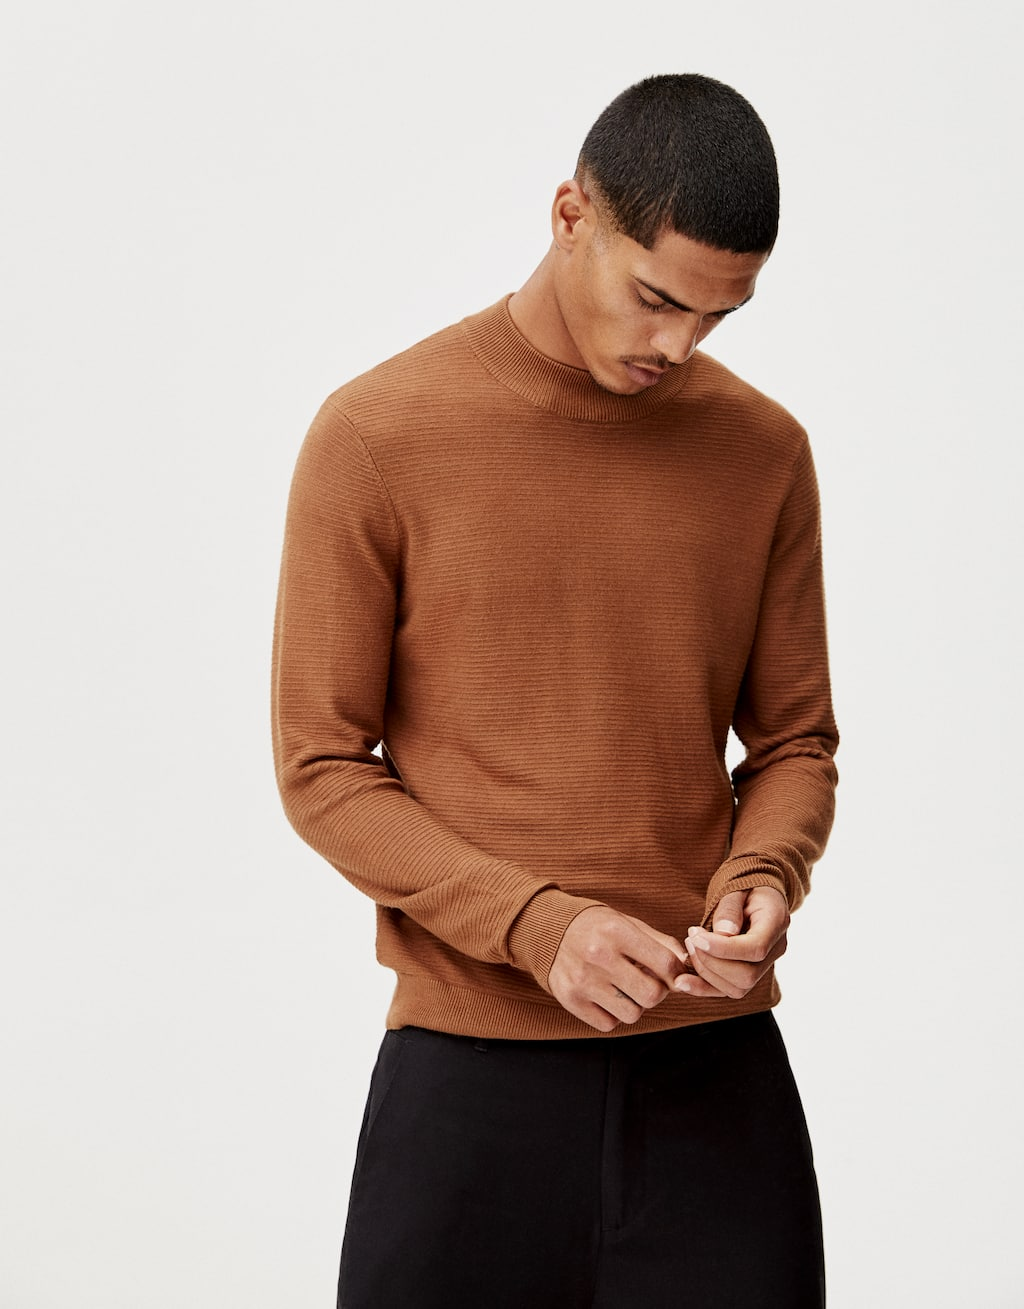 Textured Weave Sweater With A High Neck by Pull & Bear